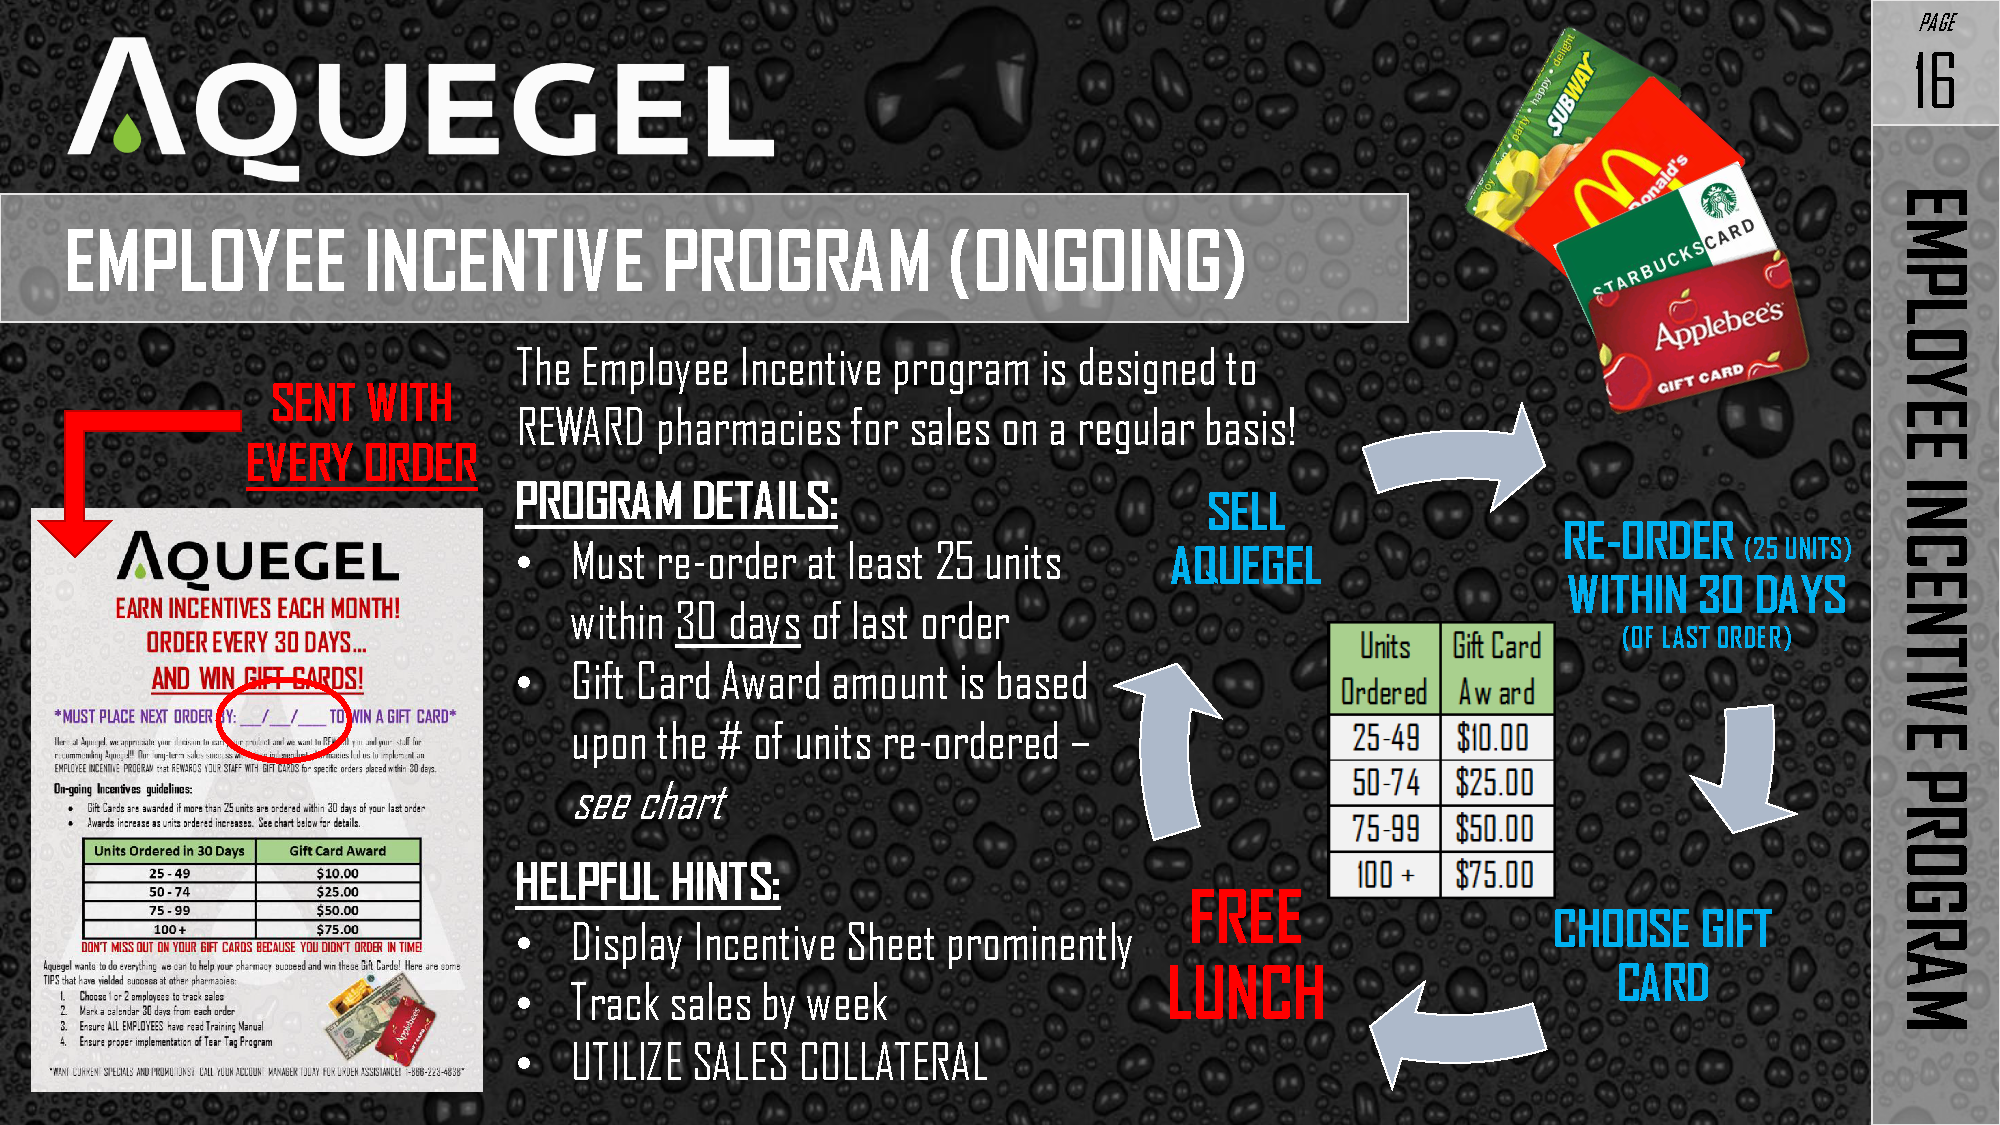 EMPLOYEE INCENTIVE PROGRAM - 16